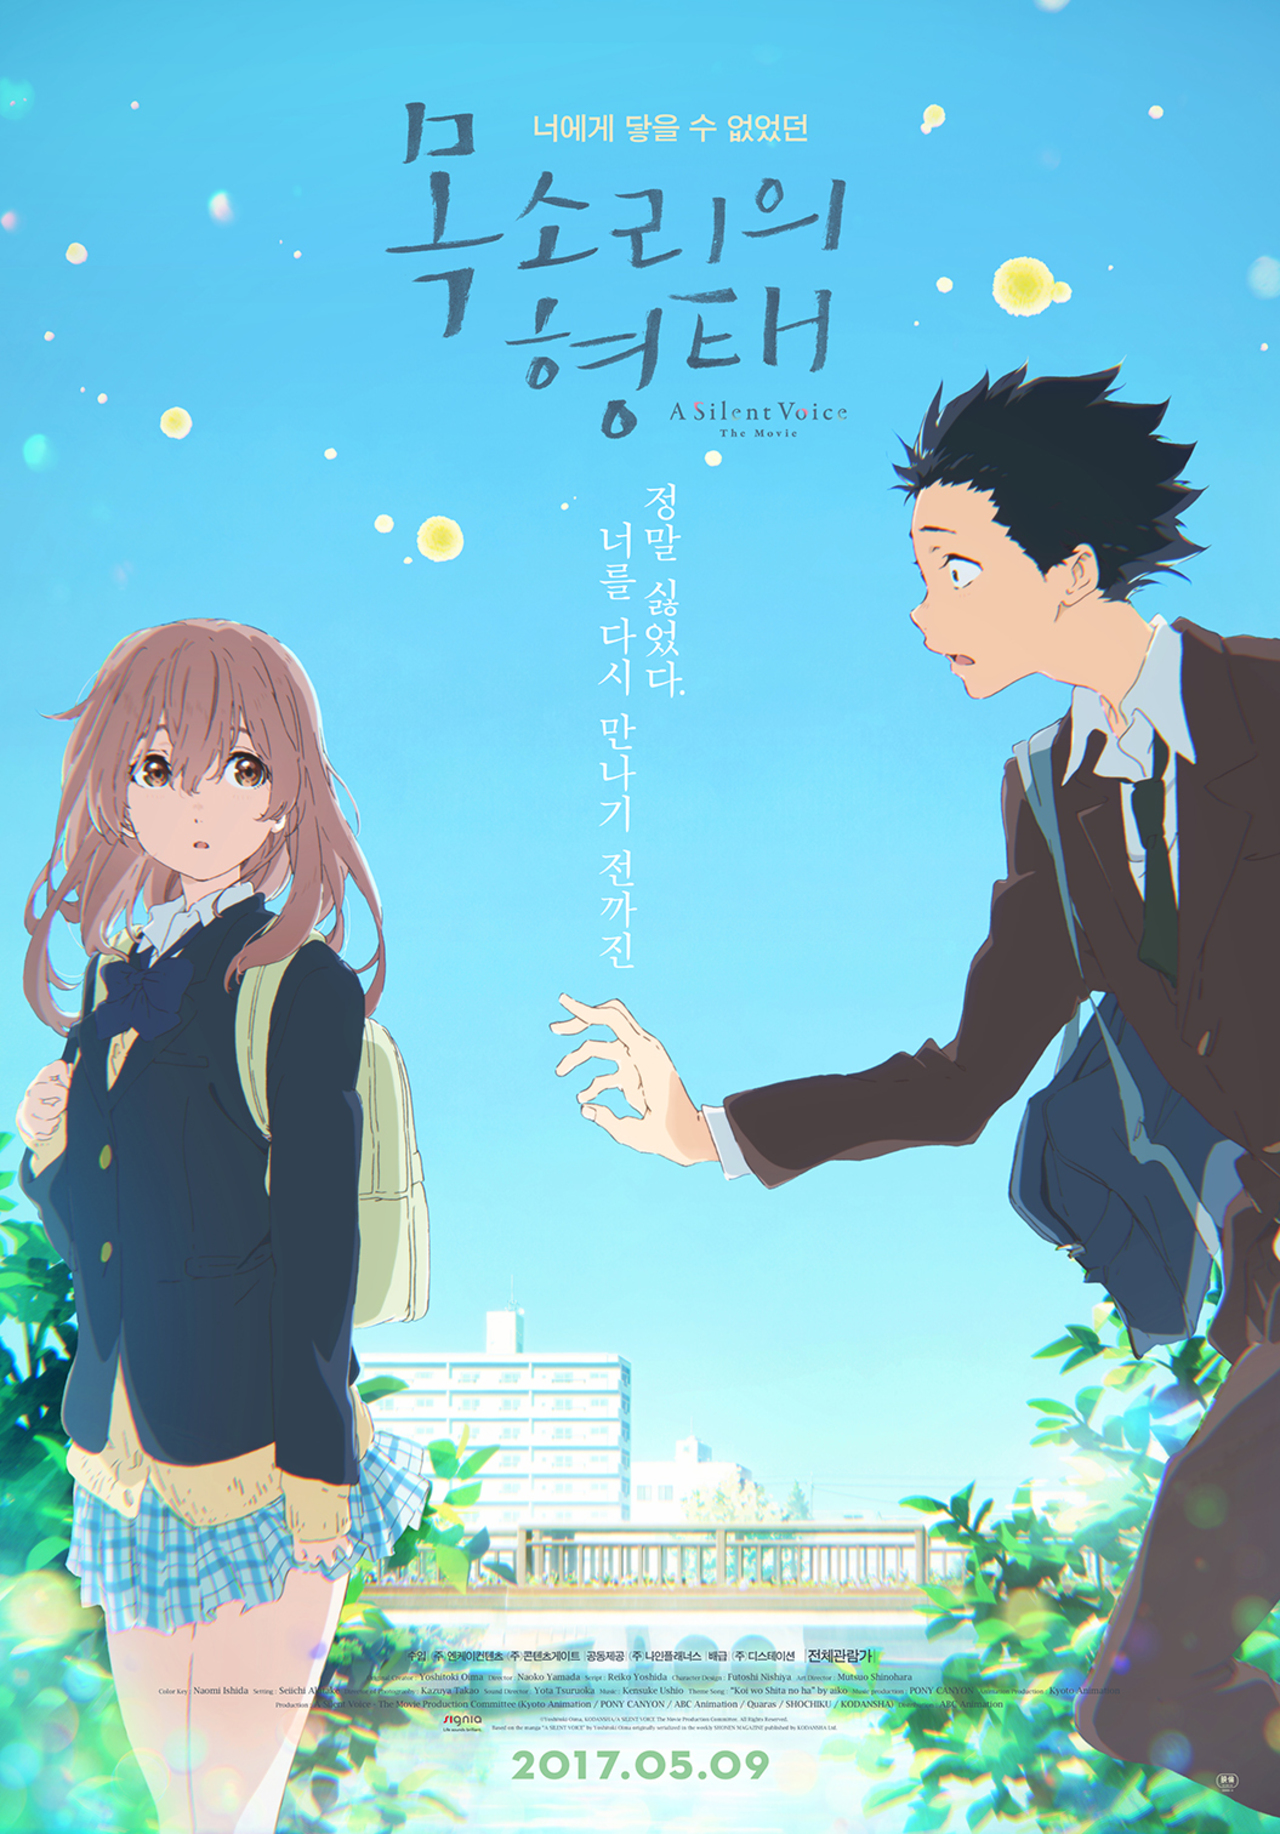 A Silent Voice: The Movie kapak